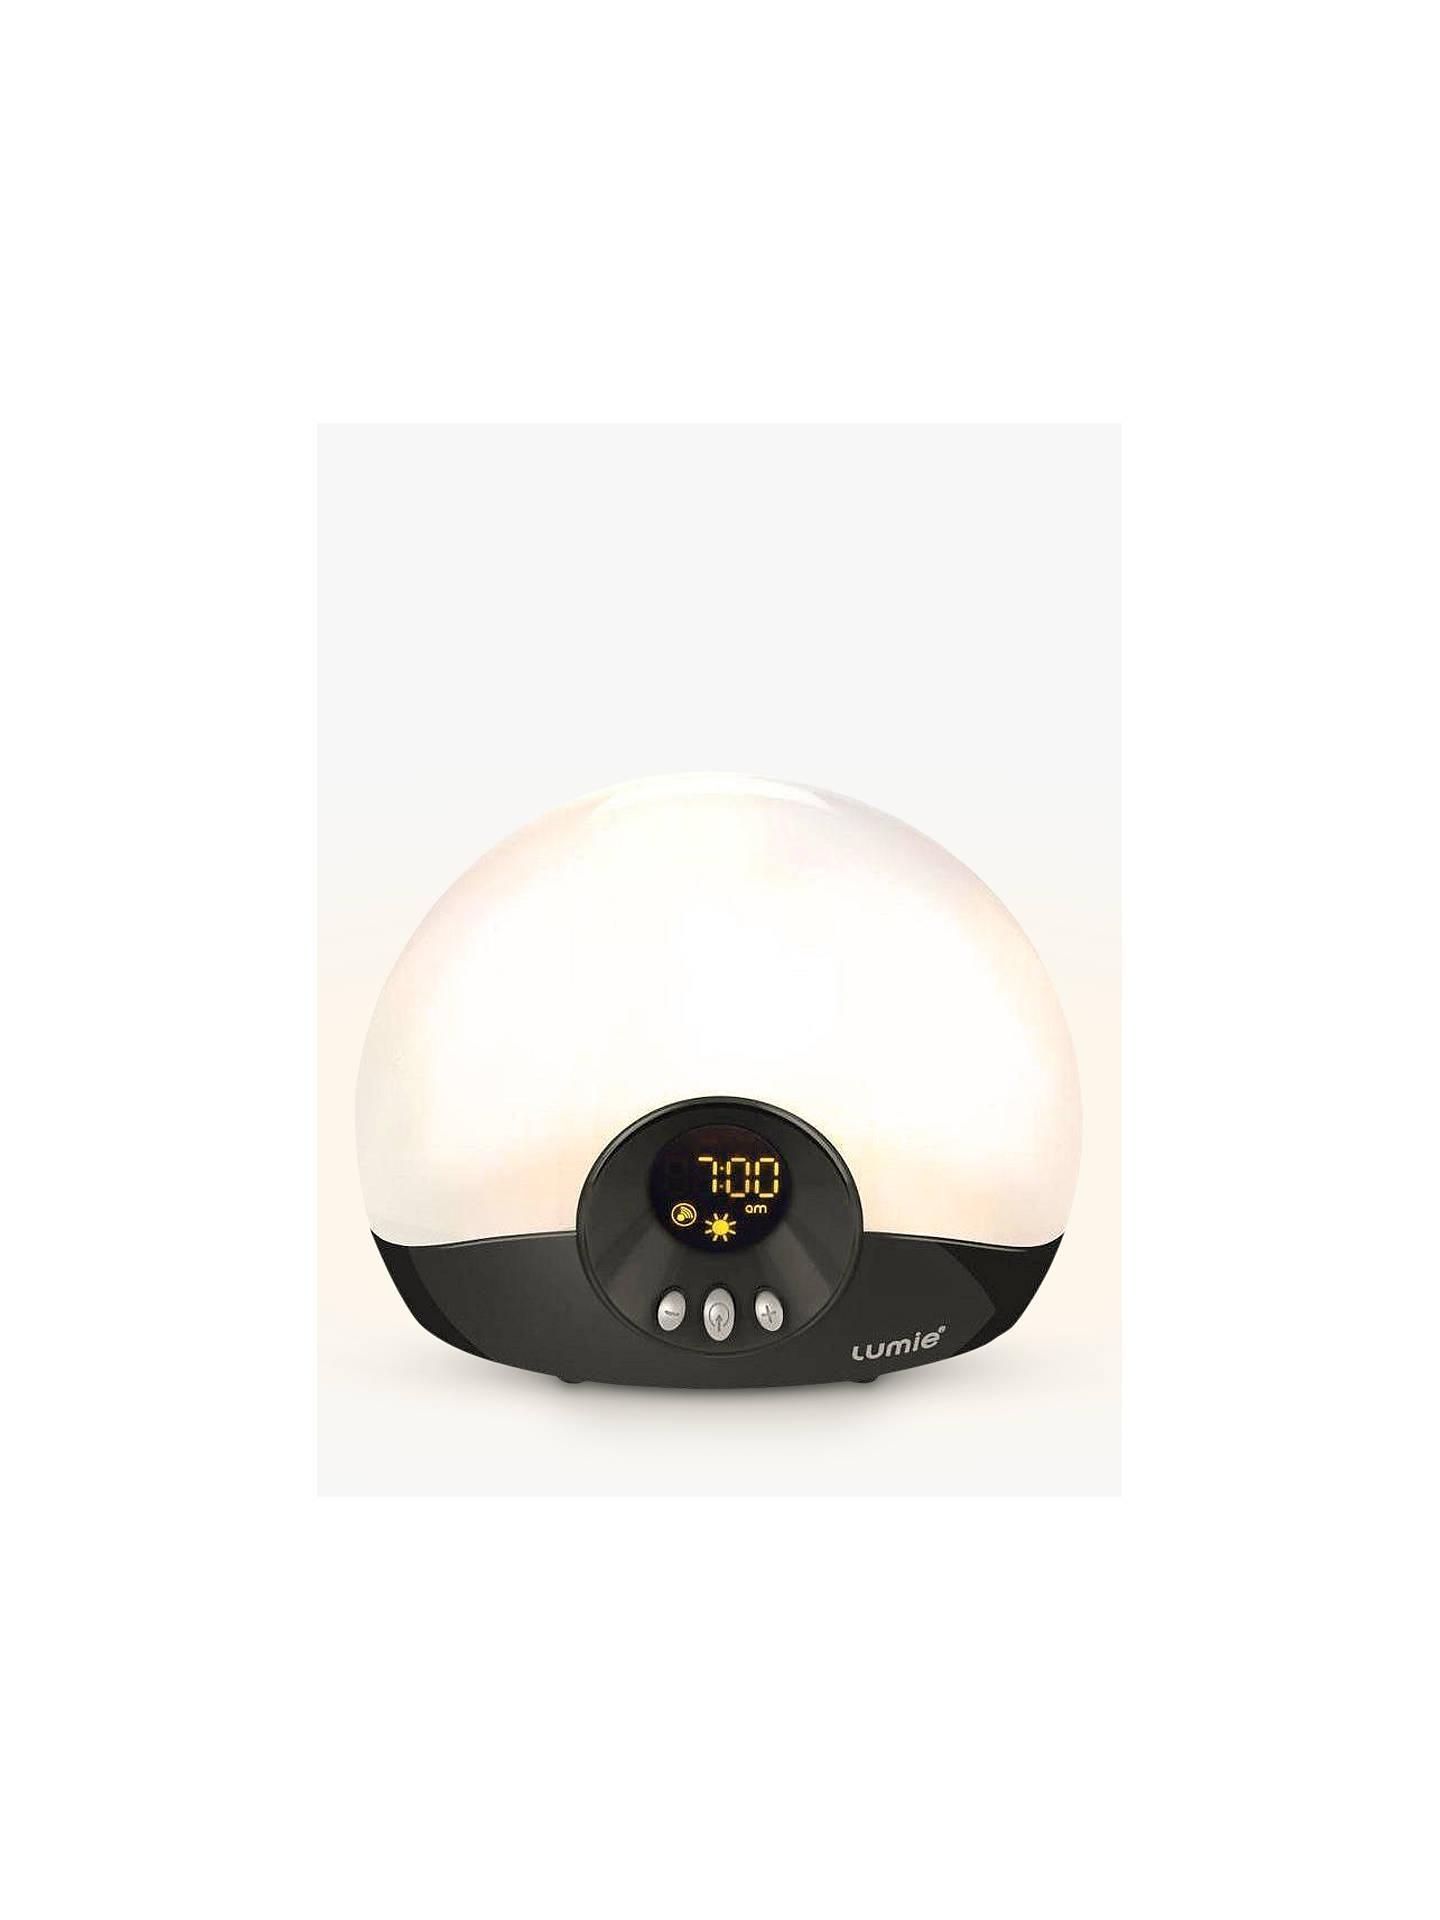 Lumie Bodyclock Go 75 Wake Up To Daylight Light At John Lewis Partners 15 Hour Lamp Fader Sunset Buylumie Online